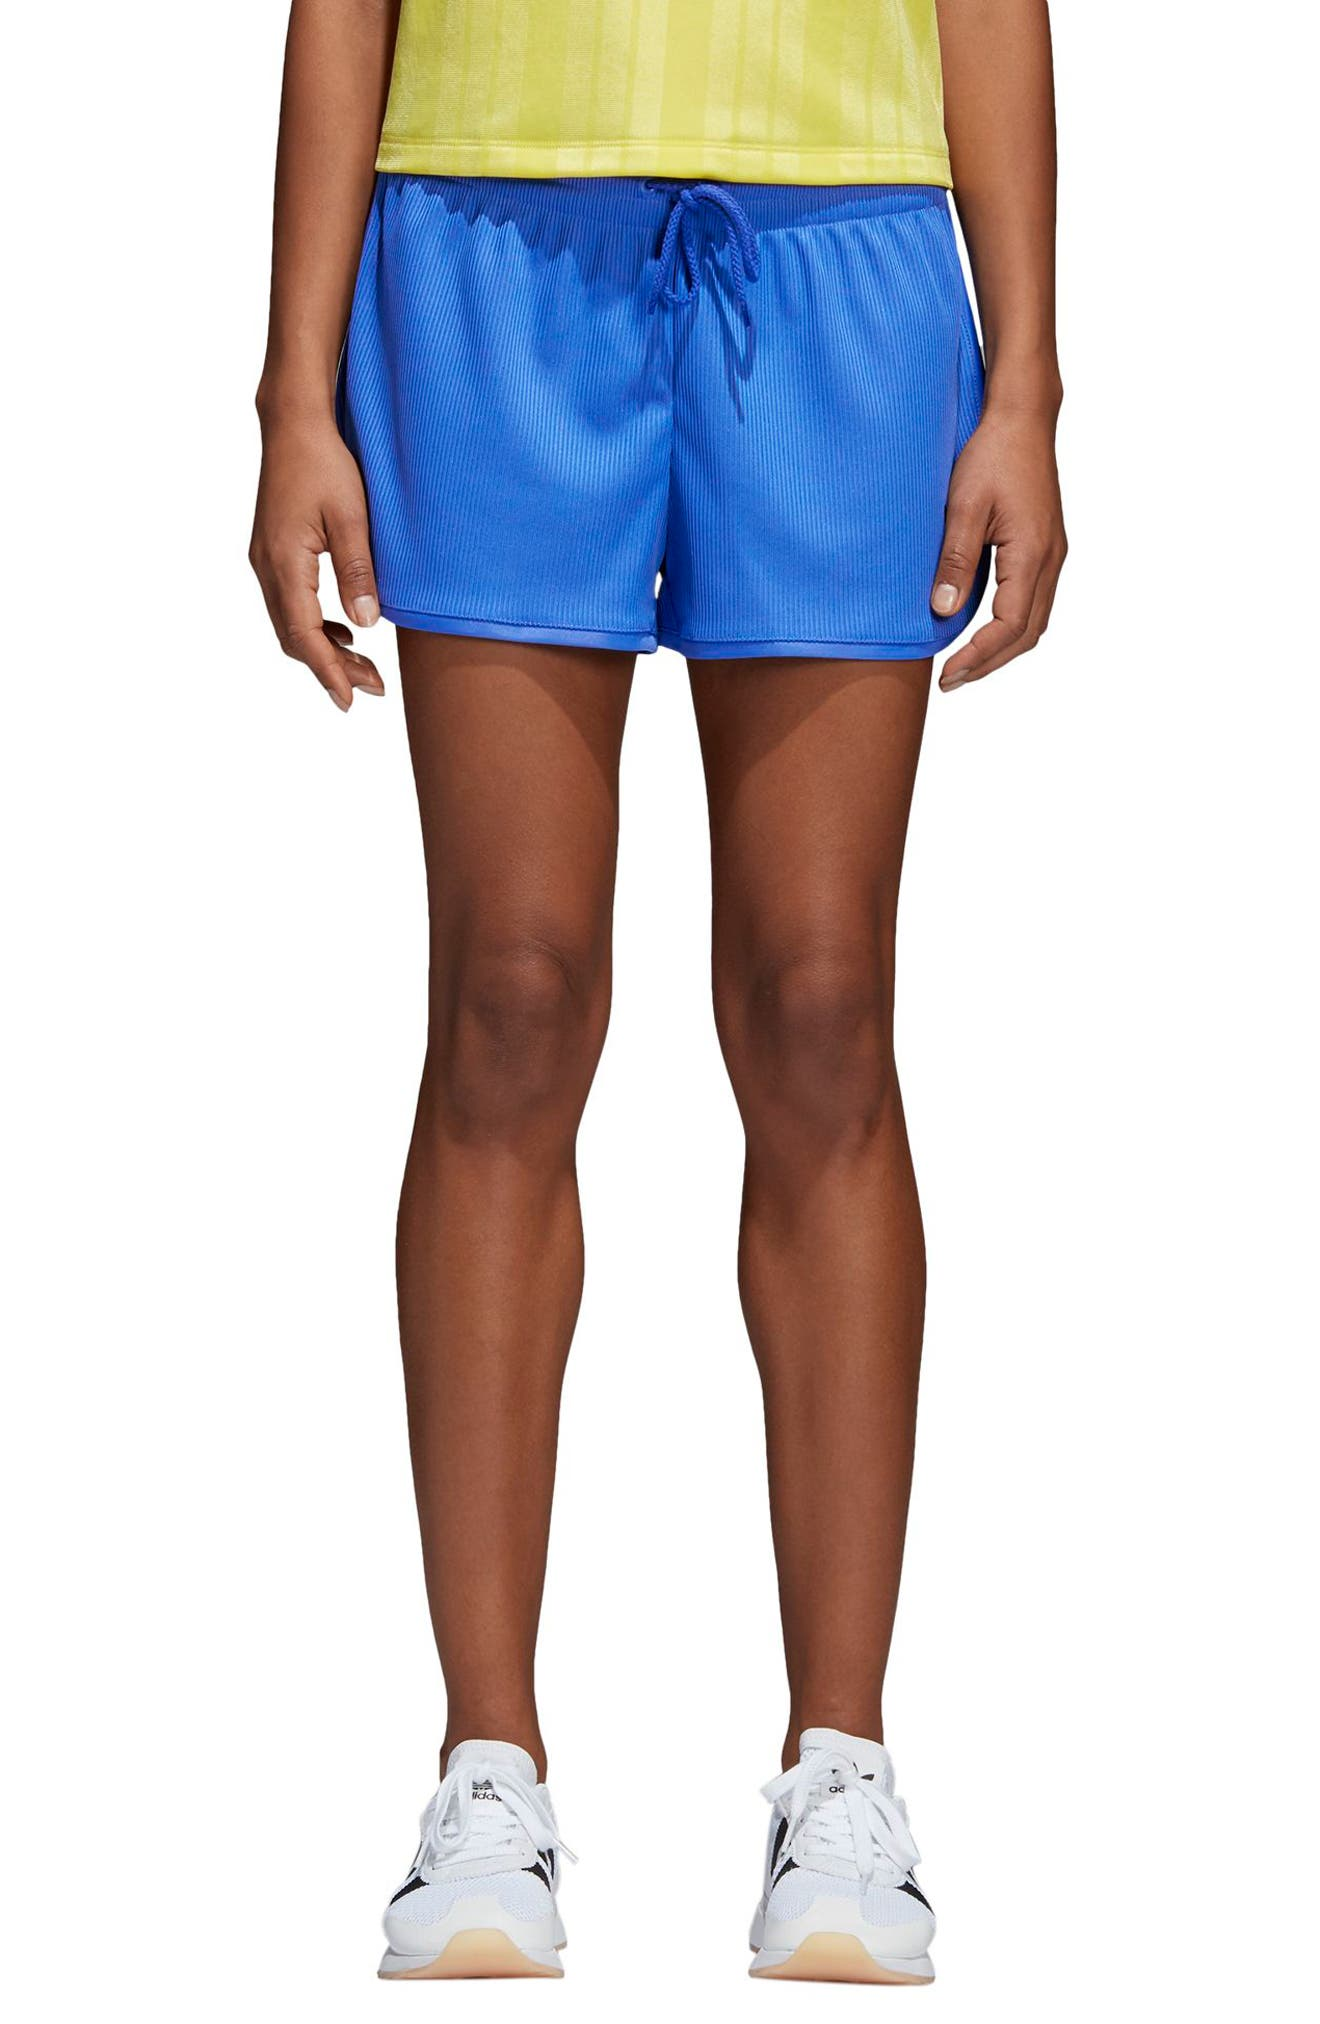 Originals Fashion League Shorts,                             Main thumbnail 1, color,                             400